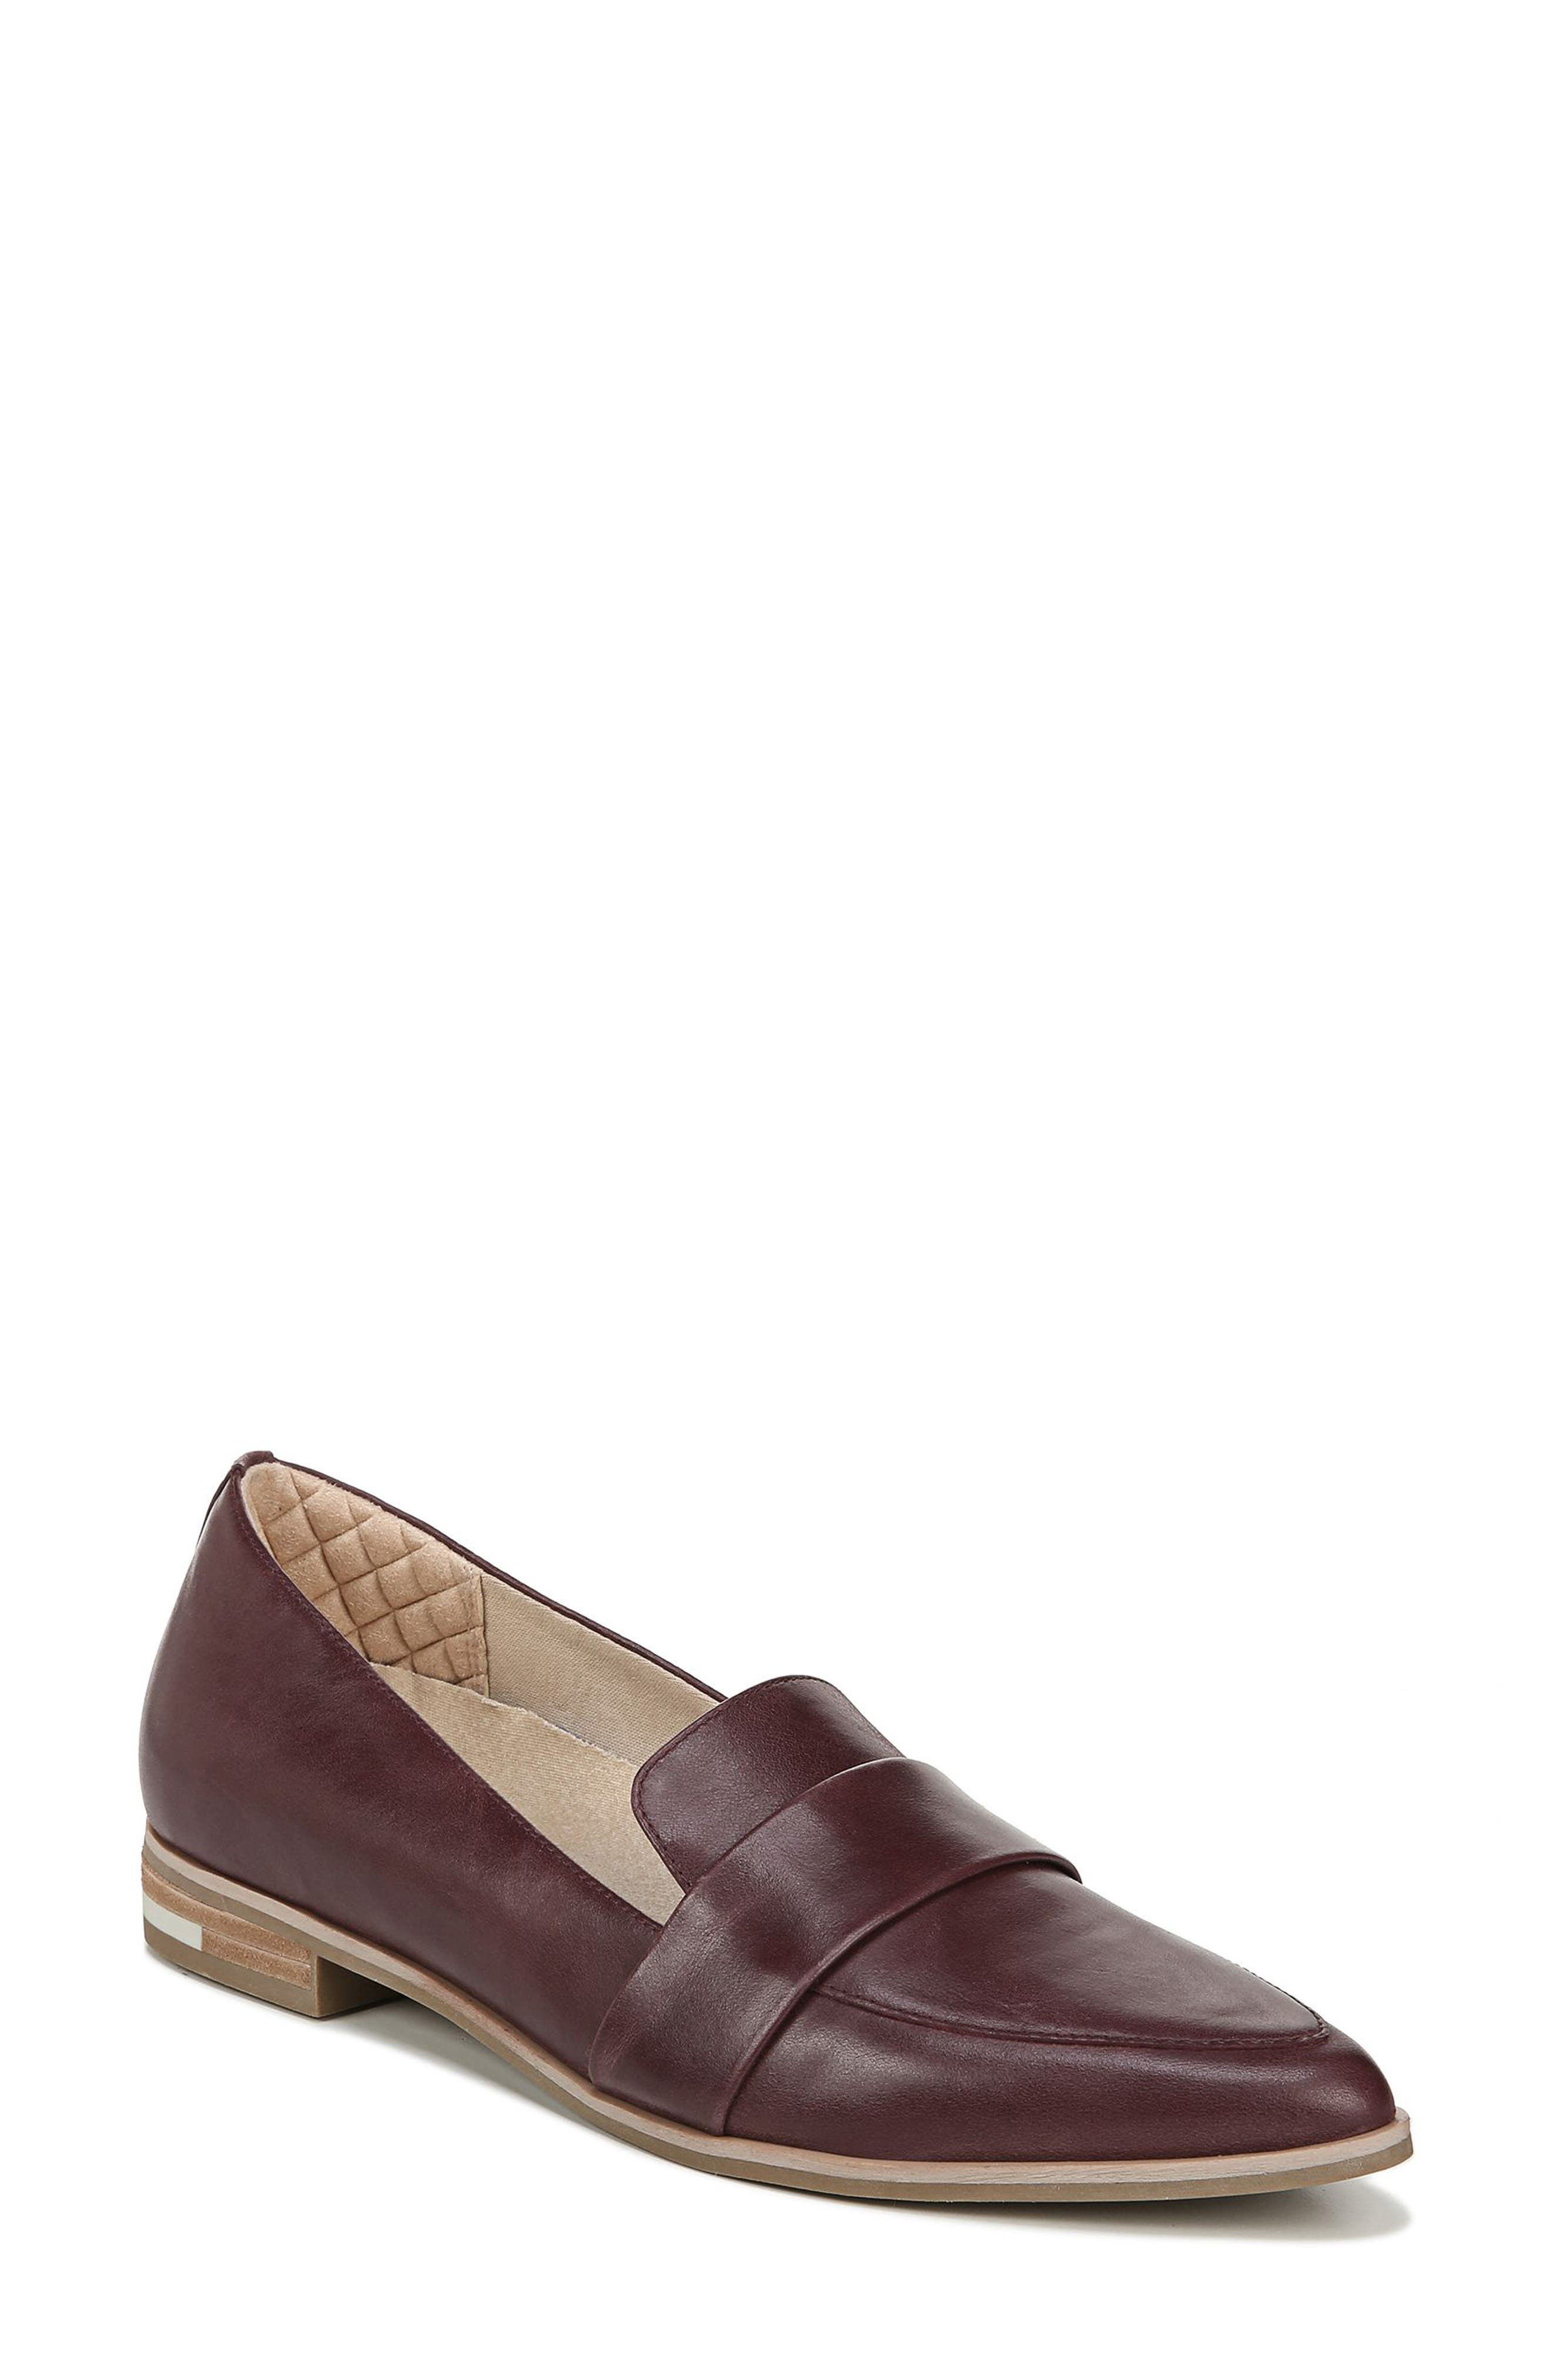 Dr. Scholl's Faxon Loafer (Women)